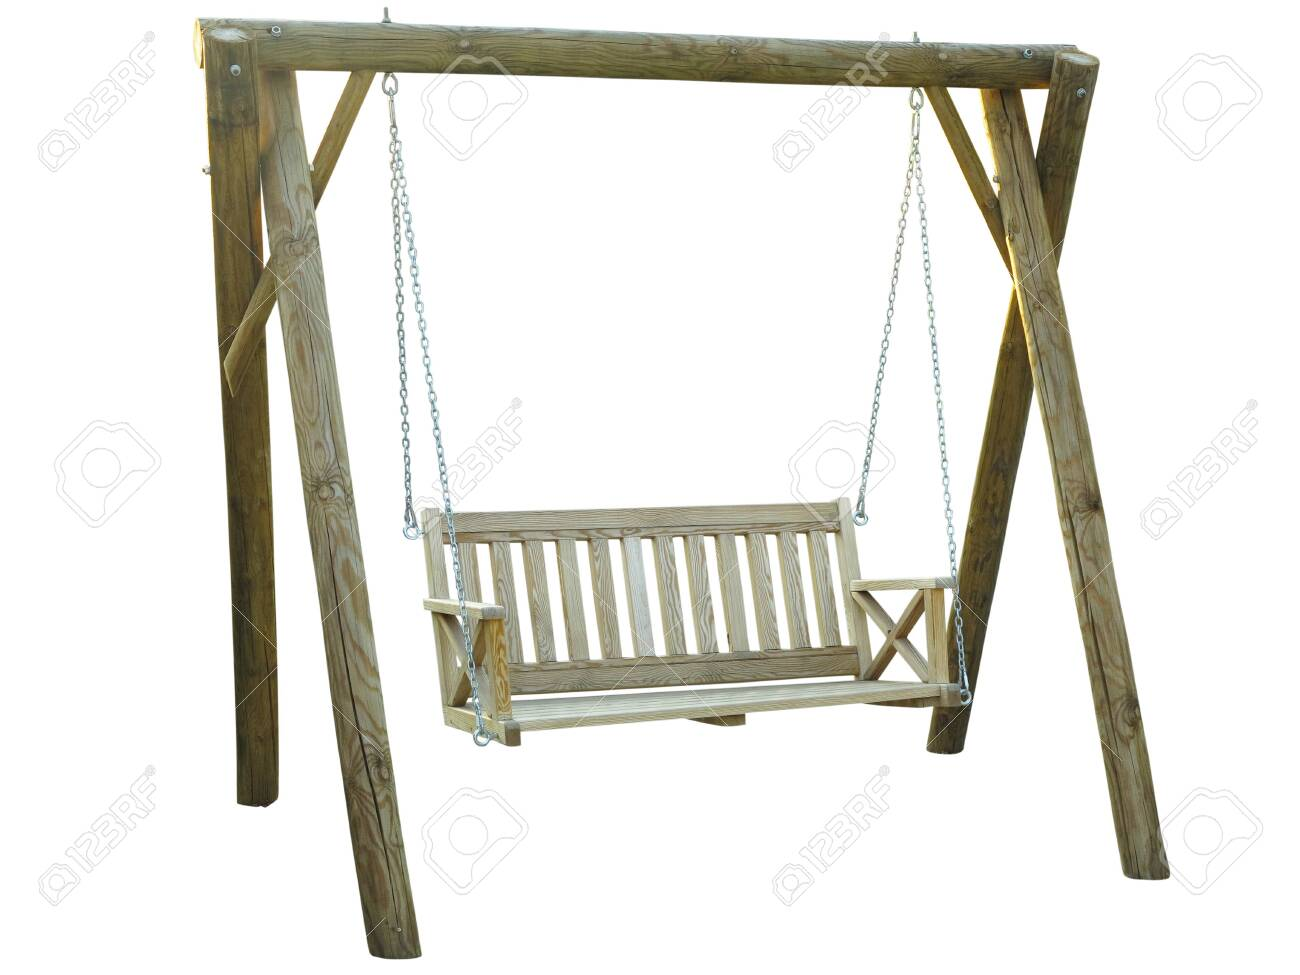 Classic Wooden Outdoor Hanging Swing Bench Furniture Isolated Stock Photo Picture And Royalty Free Image Image 129646167